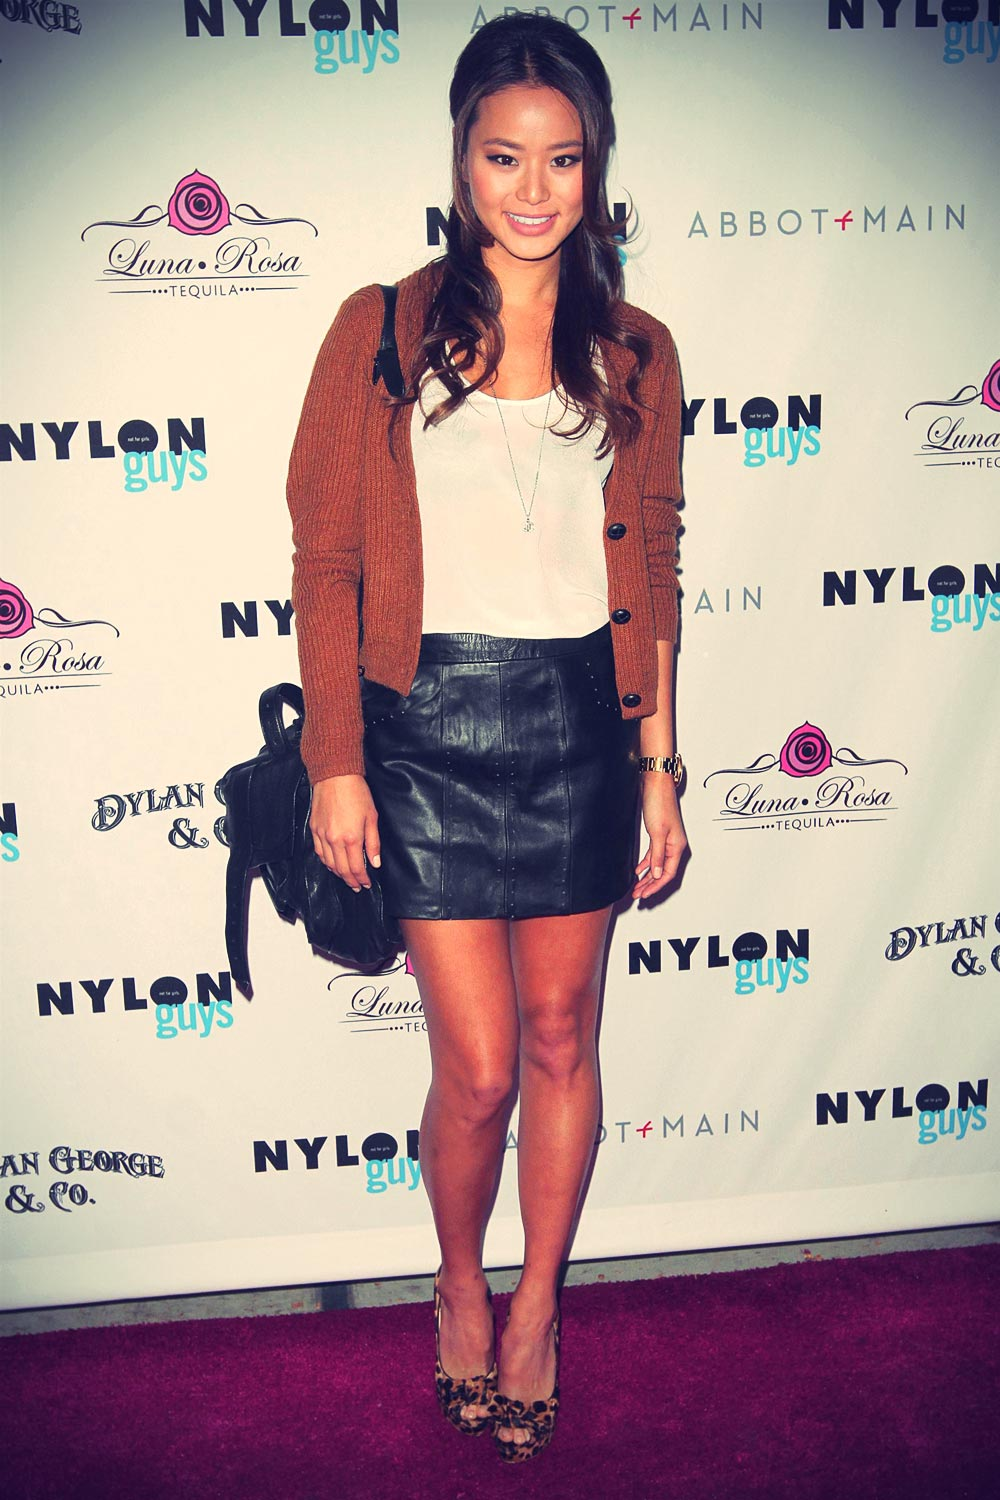 Jamie Chung at the Nylon Guys Party in LA